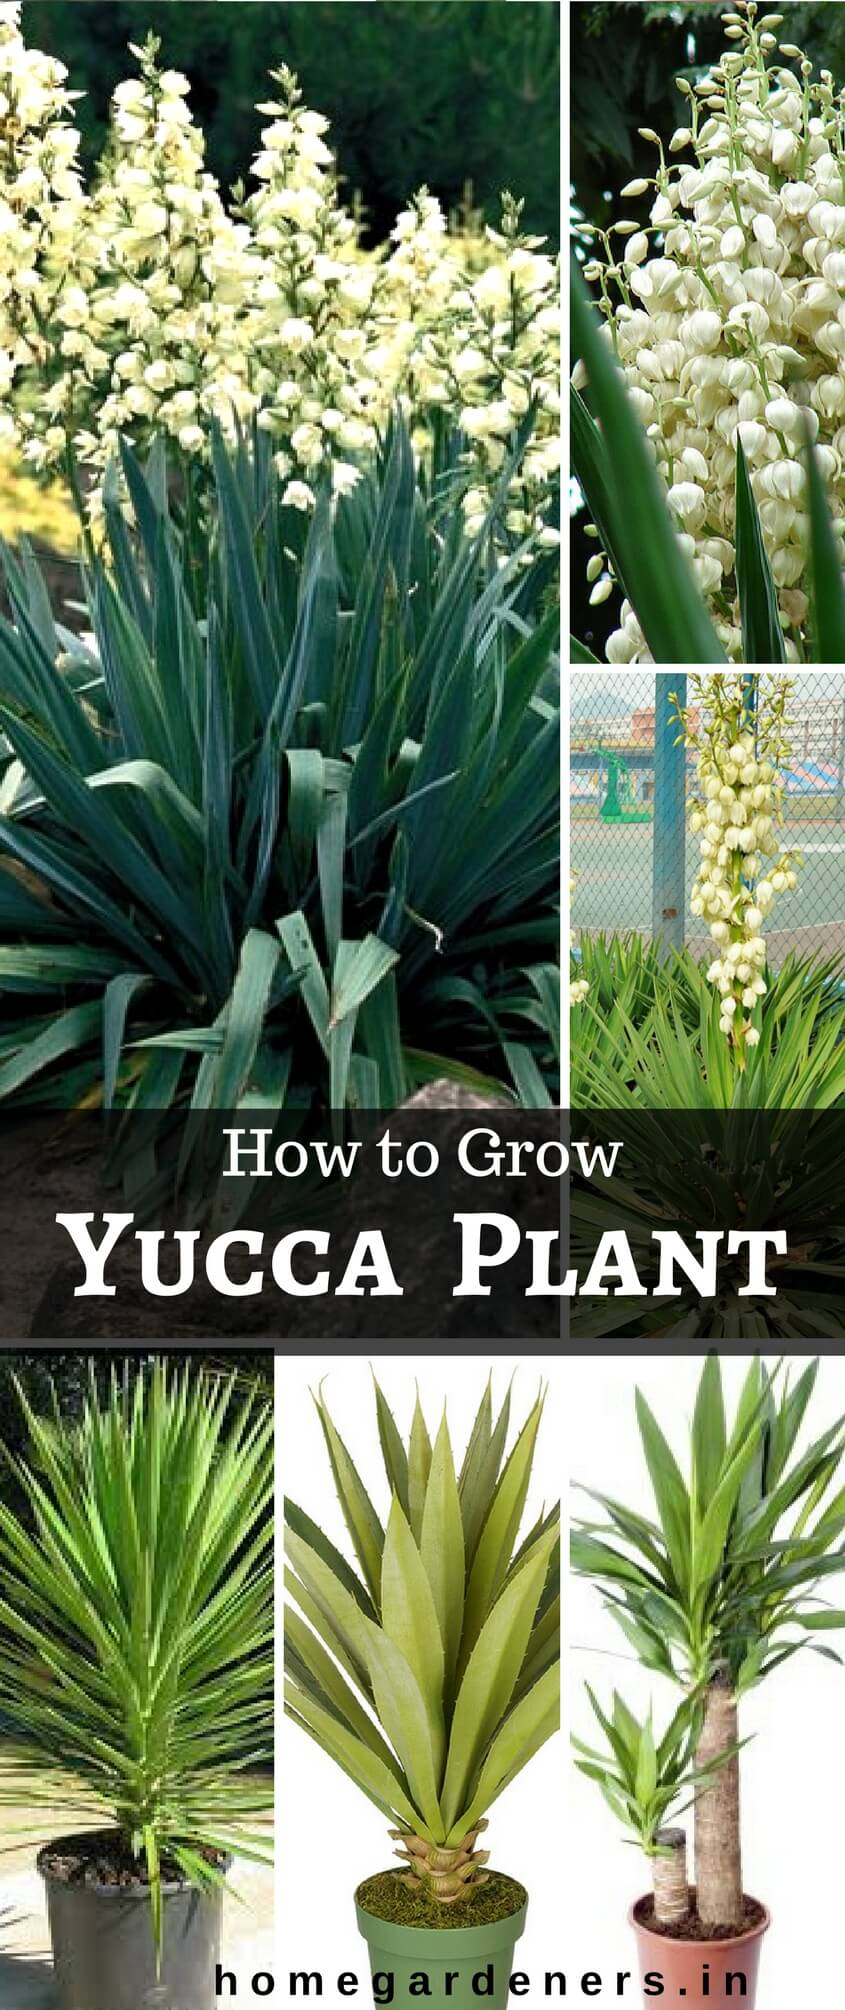 Yucca plants Caring: Why Do People Think Yucca Plant is a Good Idea?